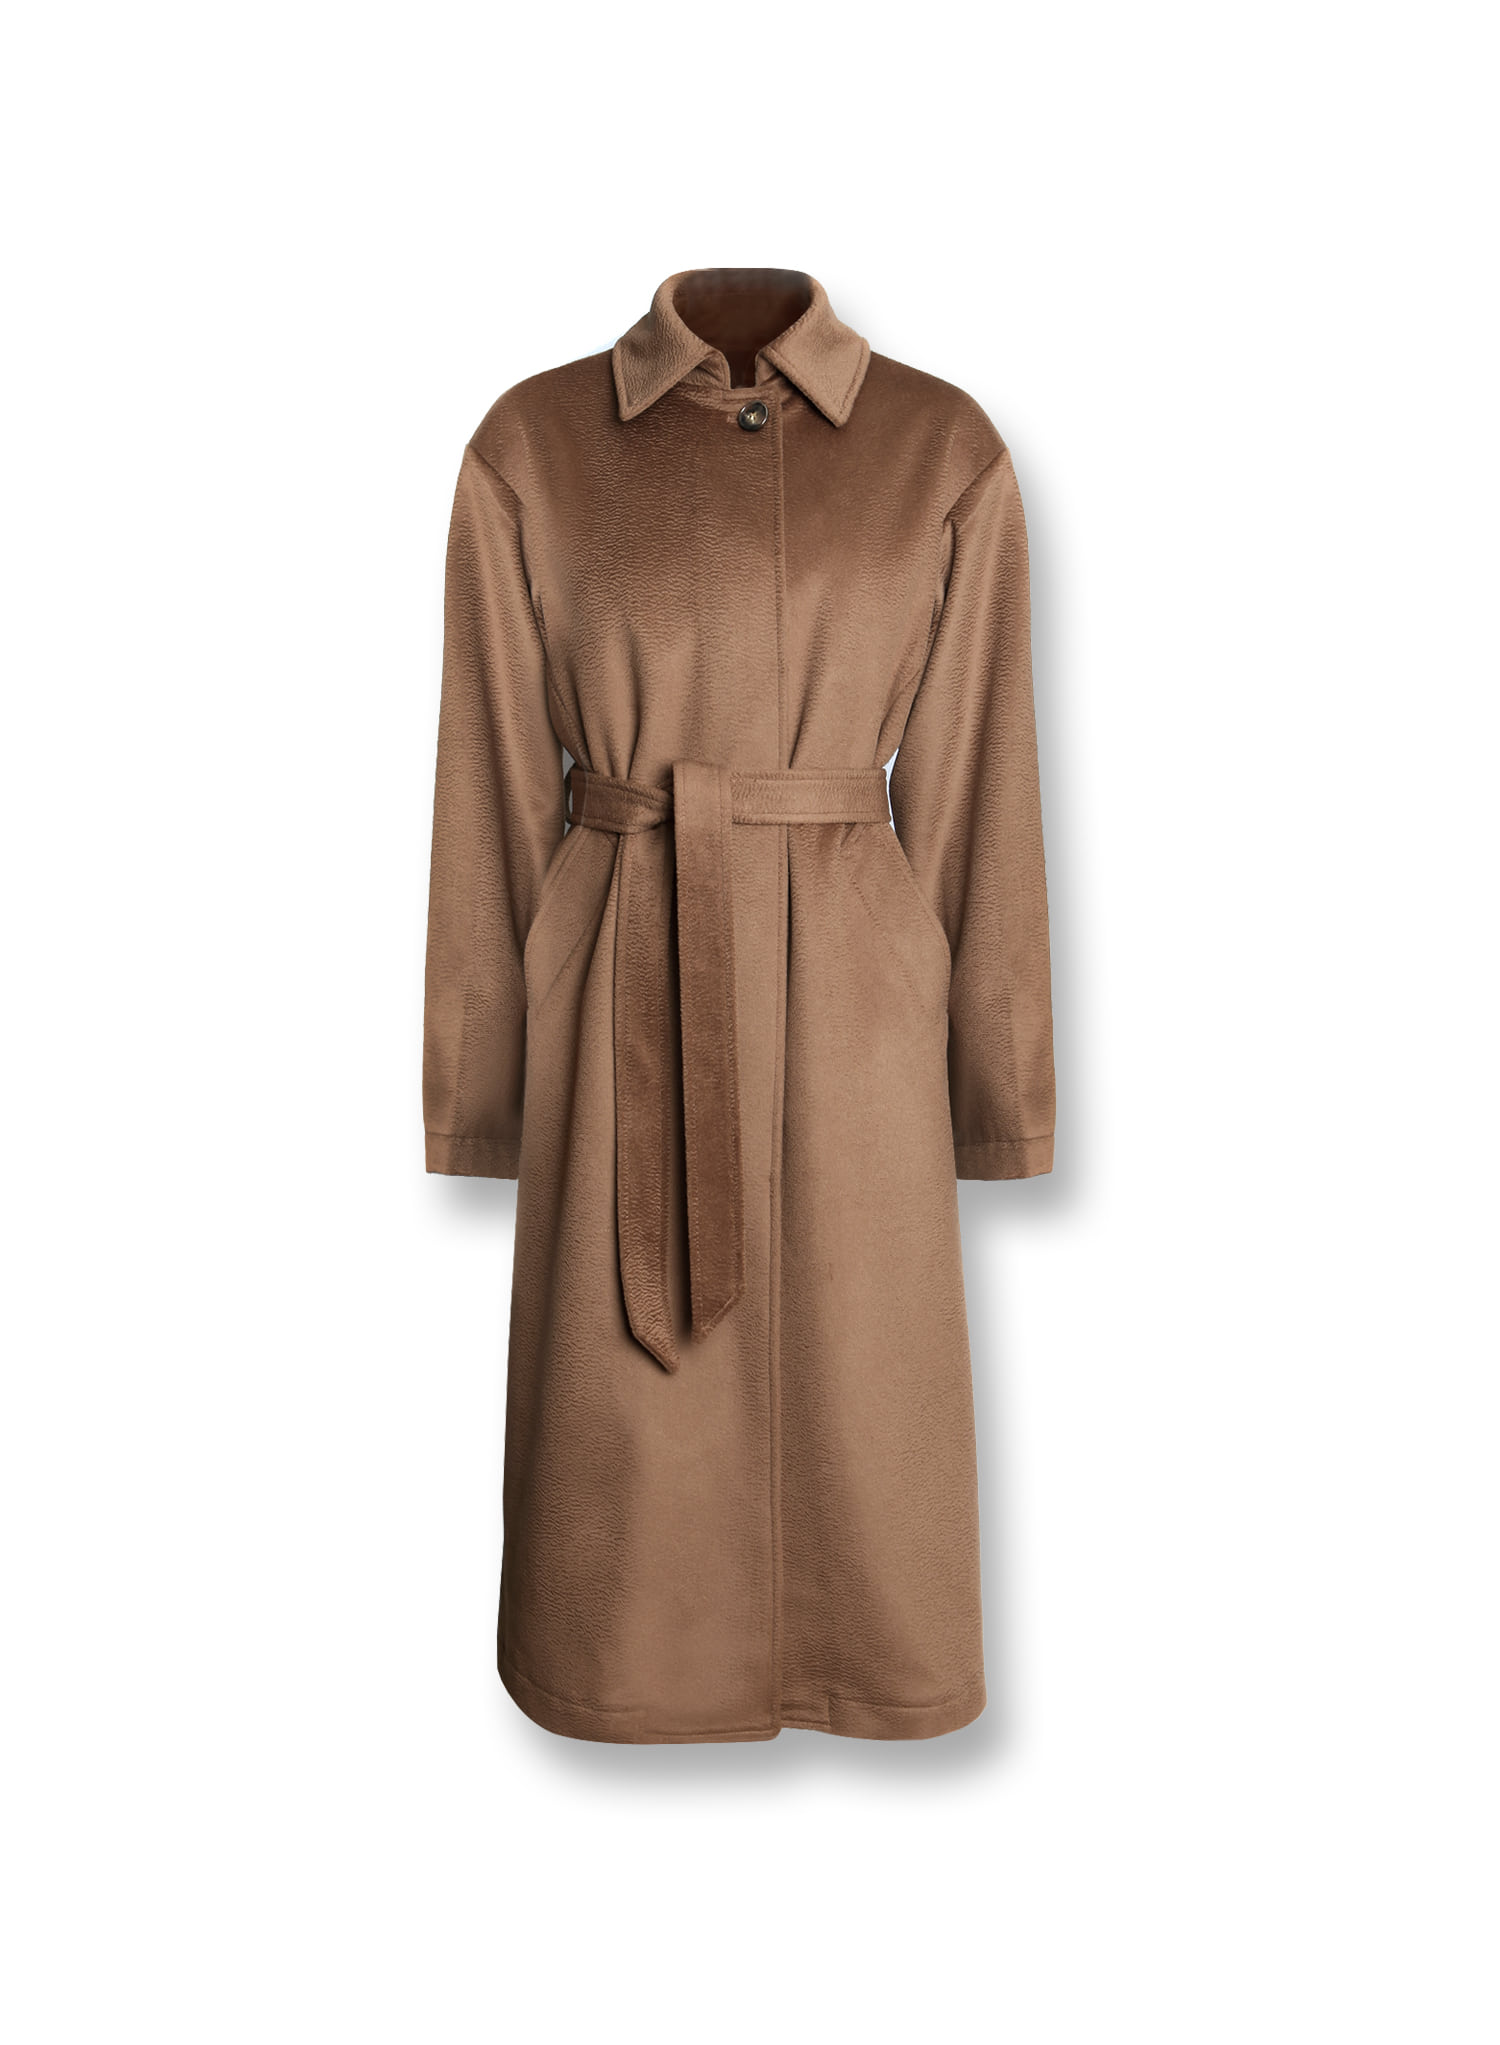 CLASSIC CASHMERE SINGLE COAT / TABACO